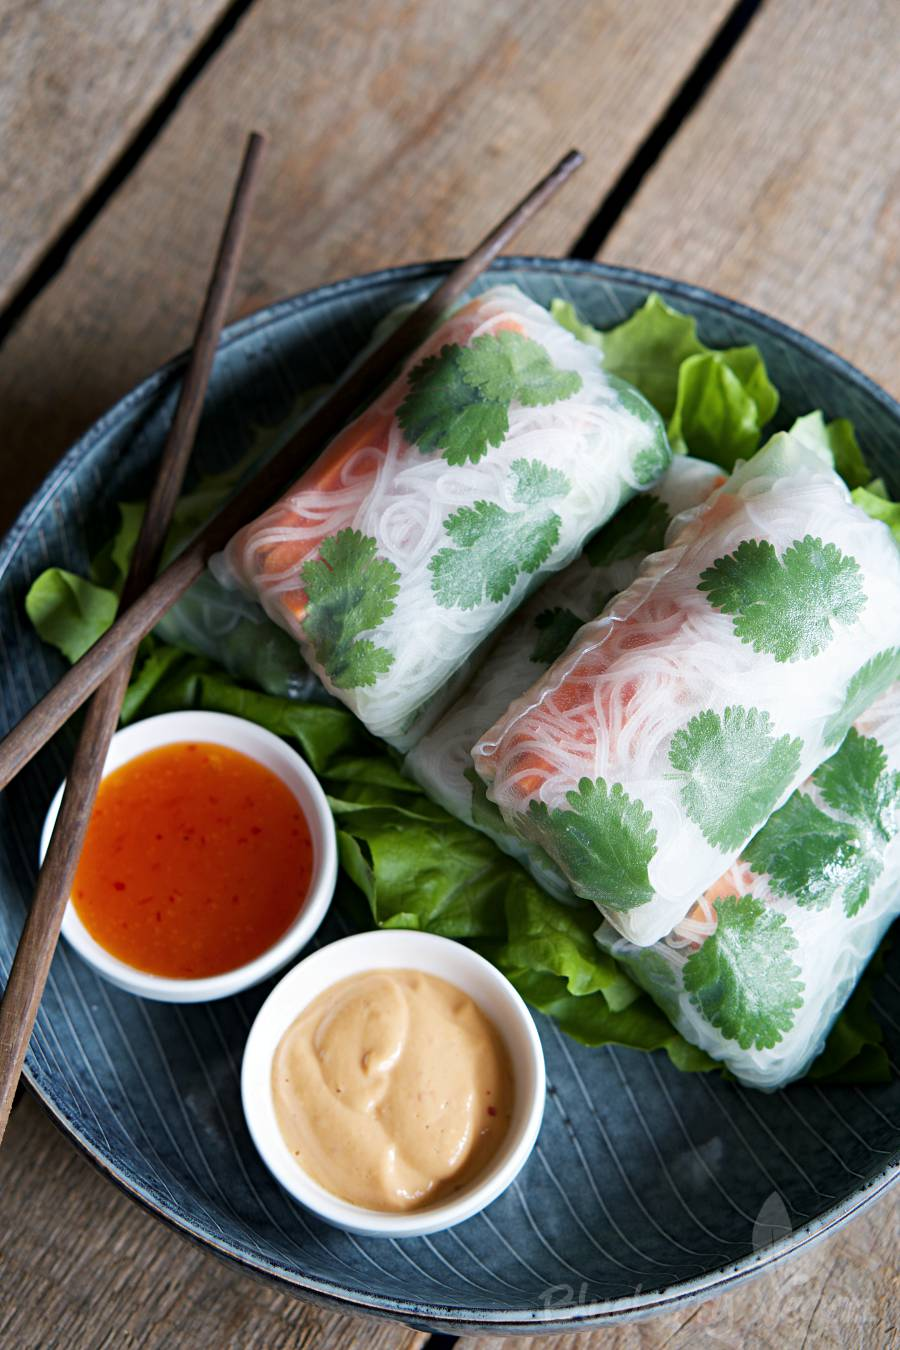 Summer Rolls with Peanut Sauce and Sweet Chili Sauce